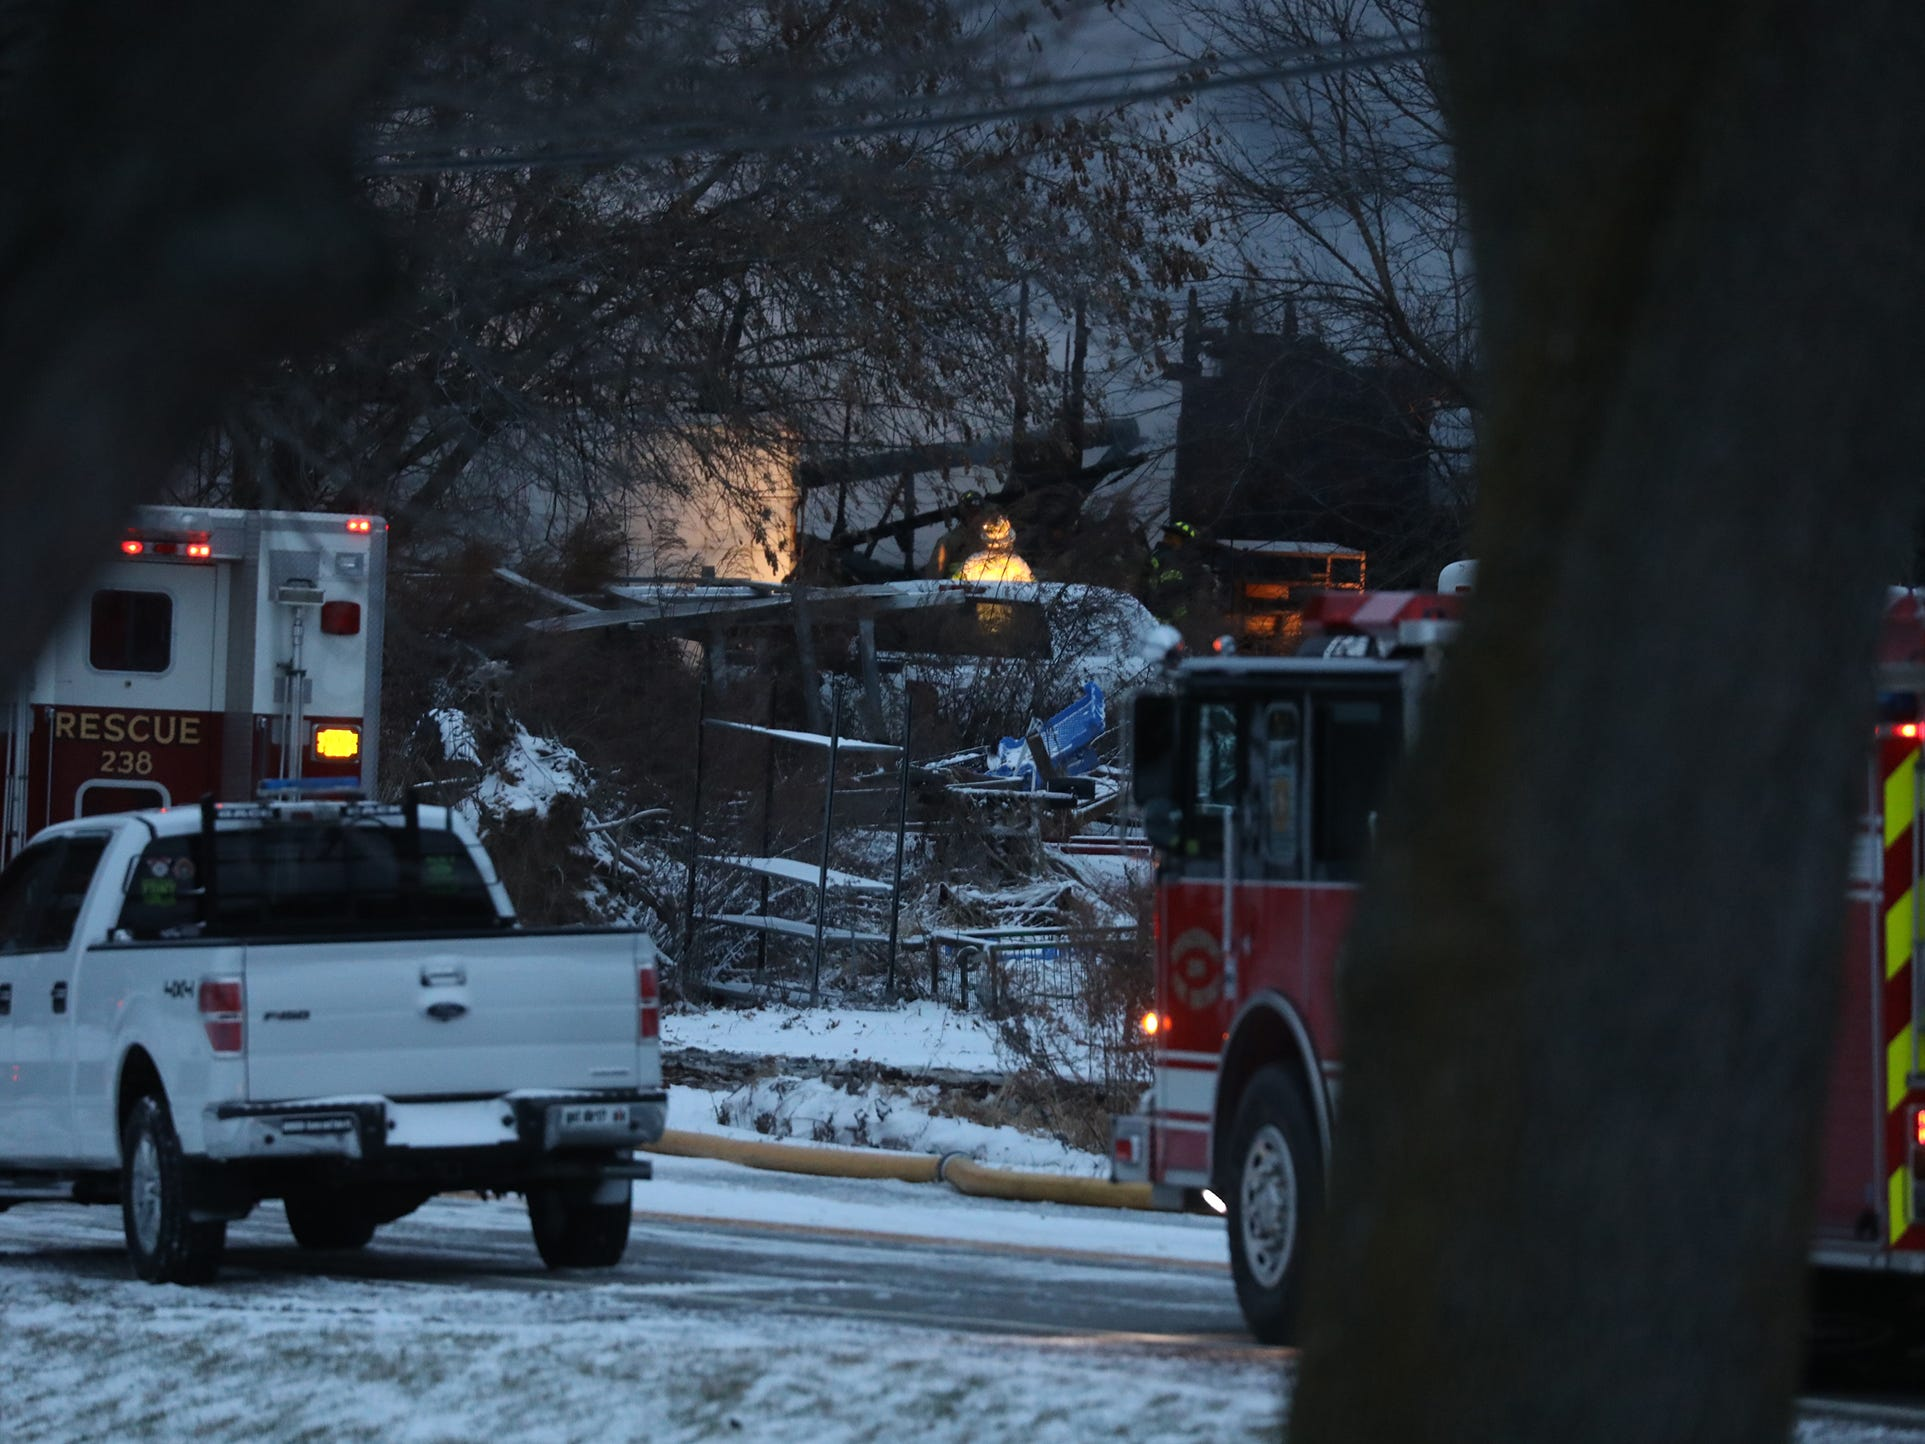 The fire was so intense, firefighters could not enter the home to attempt a rescue.